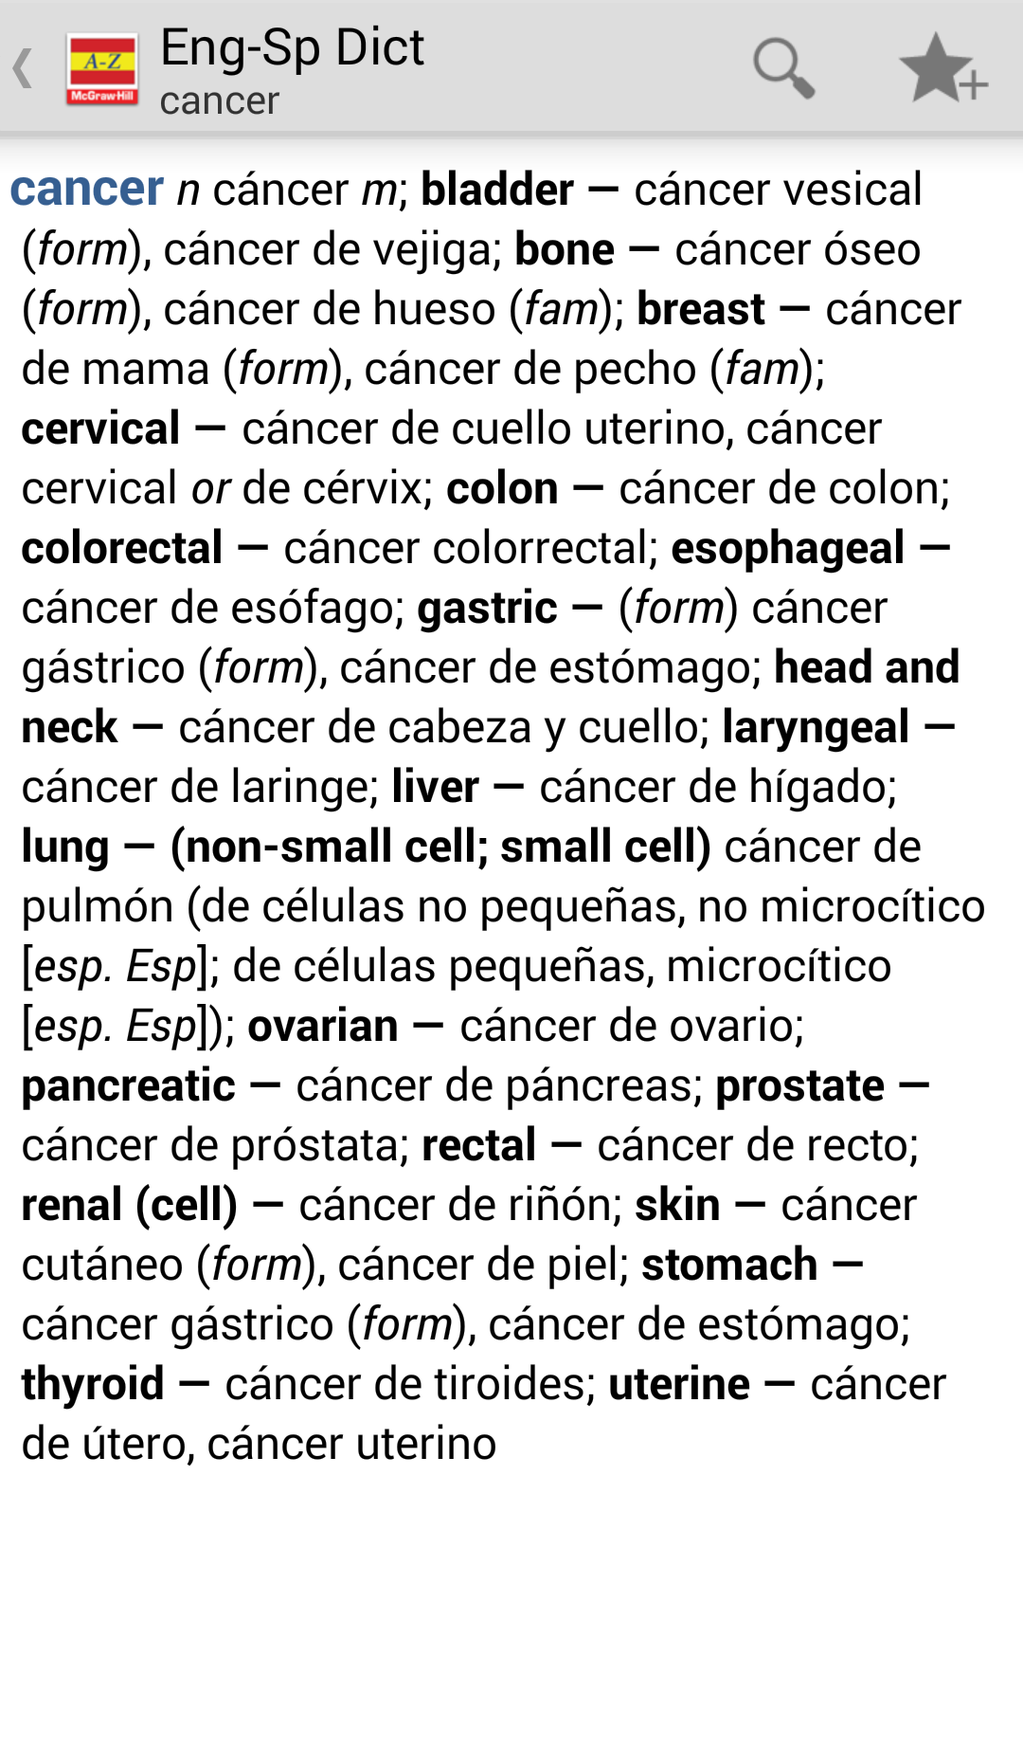 English-Spanish/Spanish-English Medical Dictionary Screenshot 1